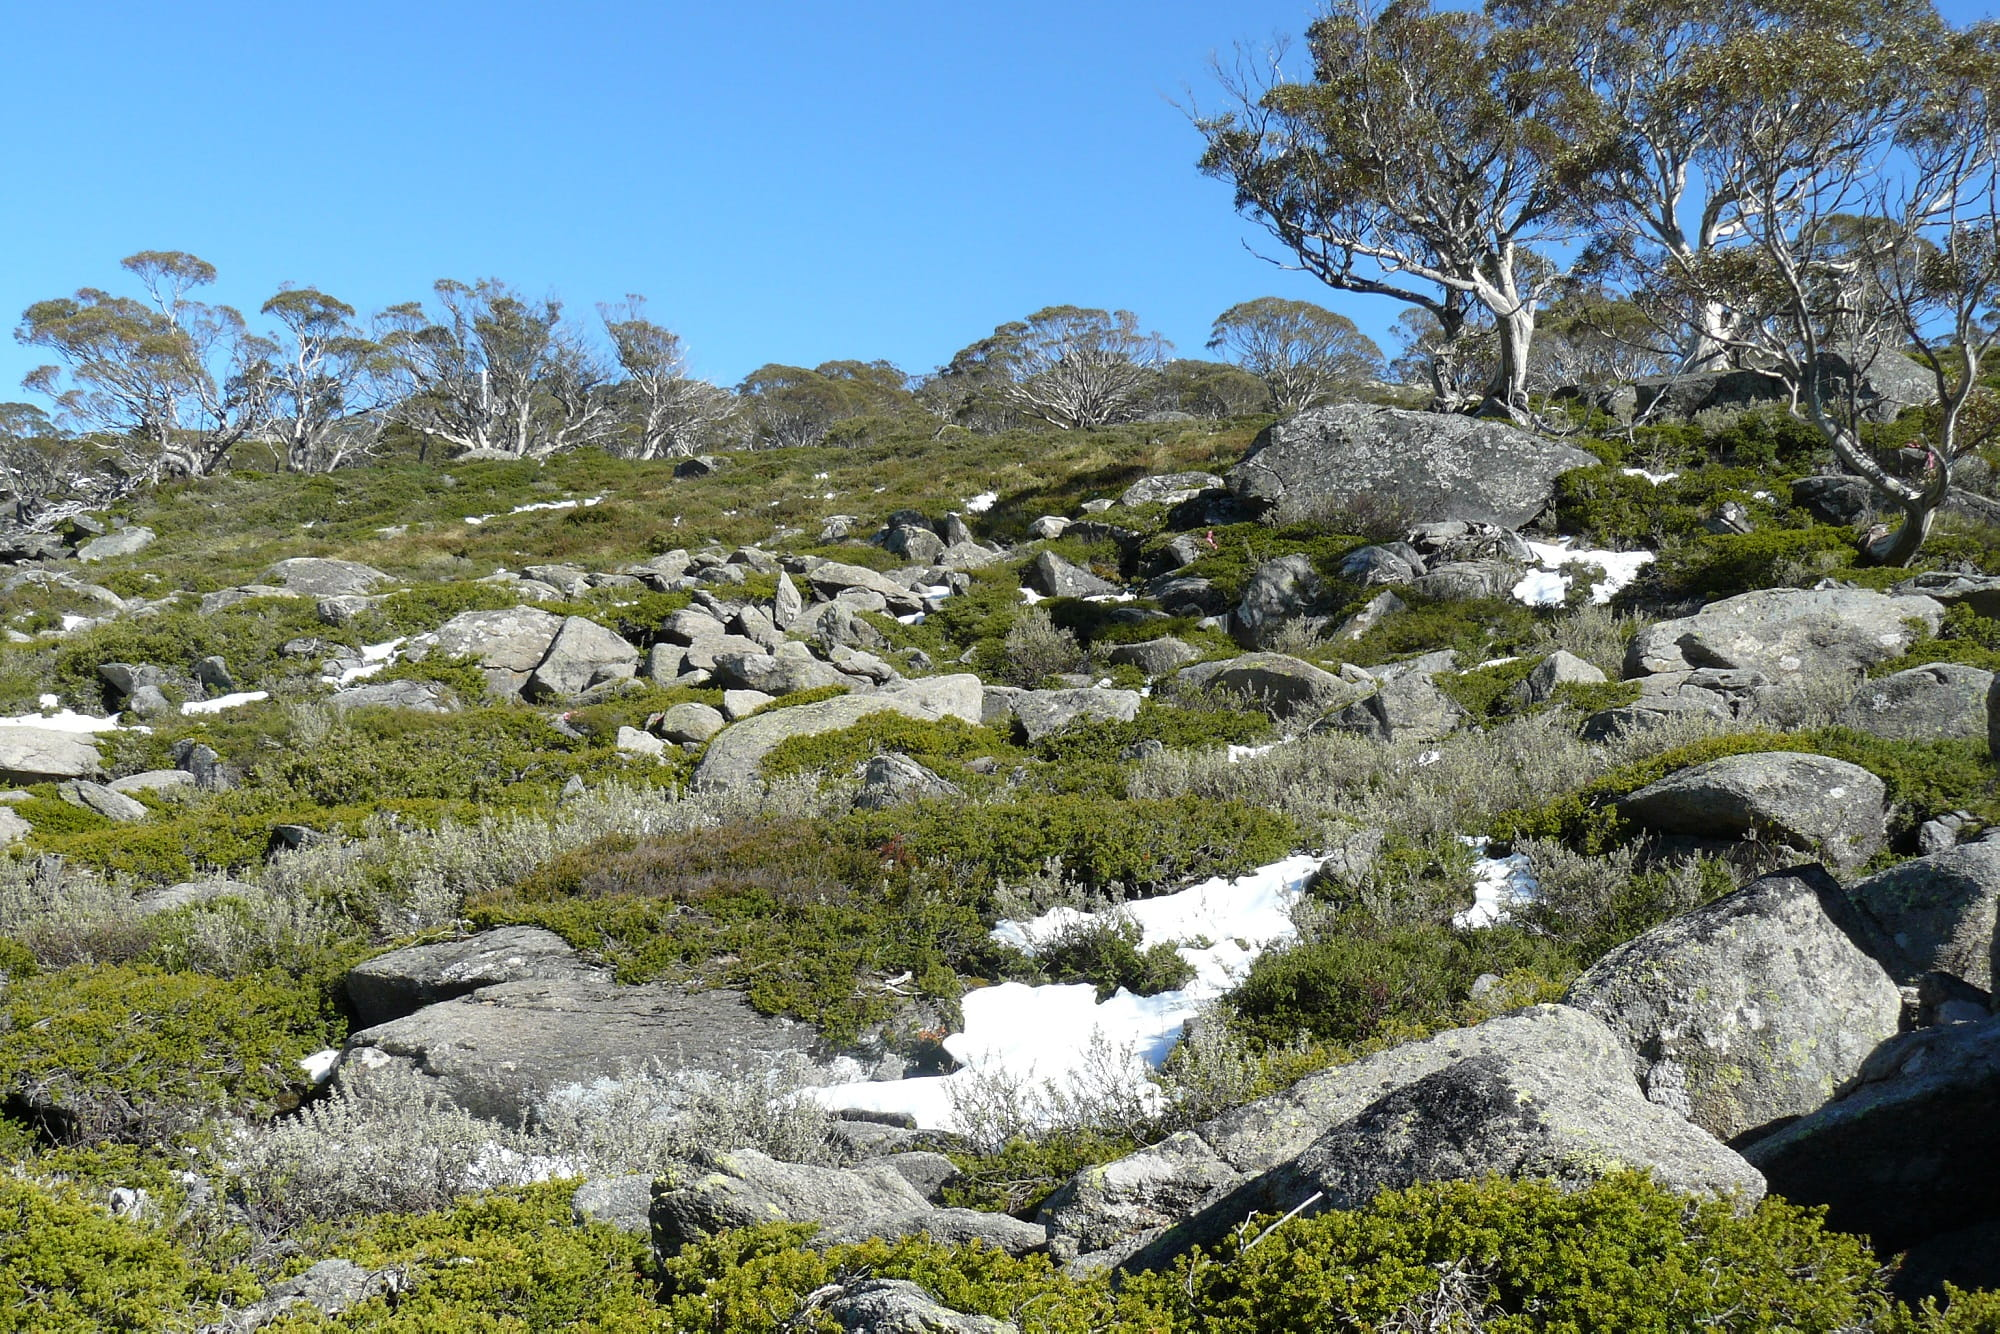 Boulder fields in Kosciuskzo National Park. Photo: Mel Schroder/OEH